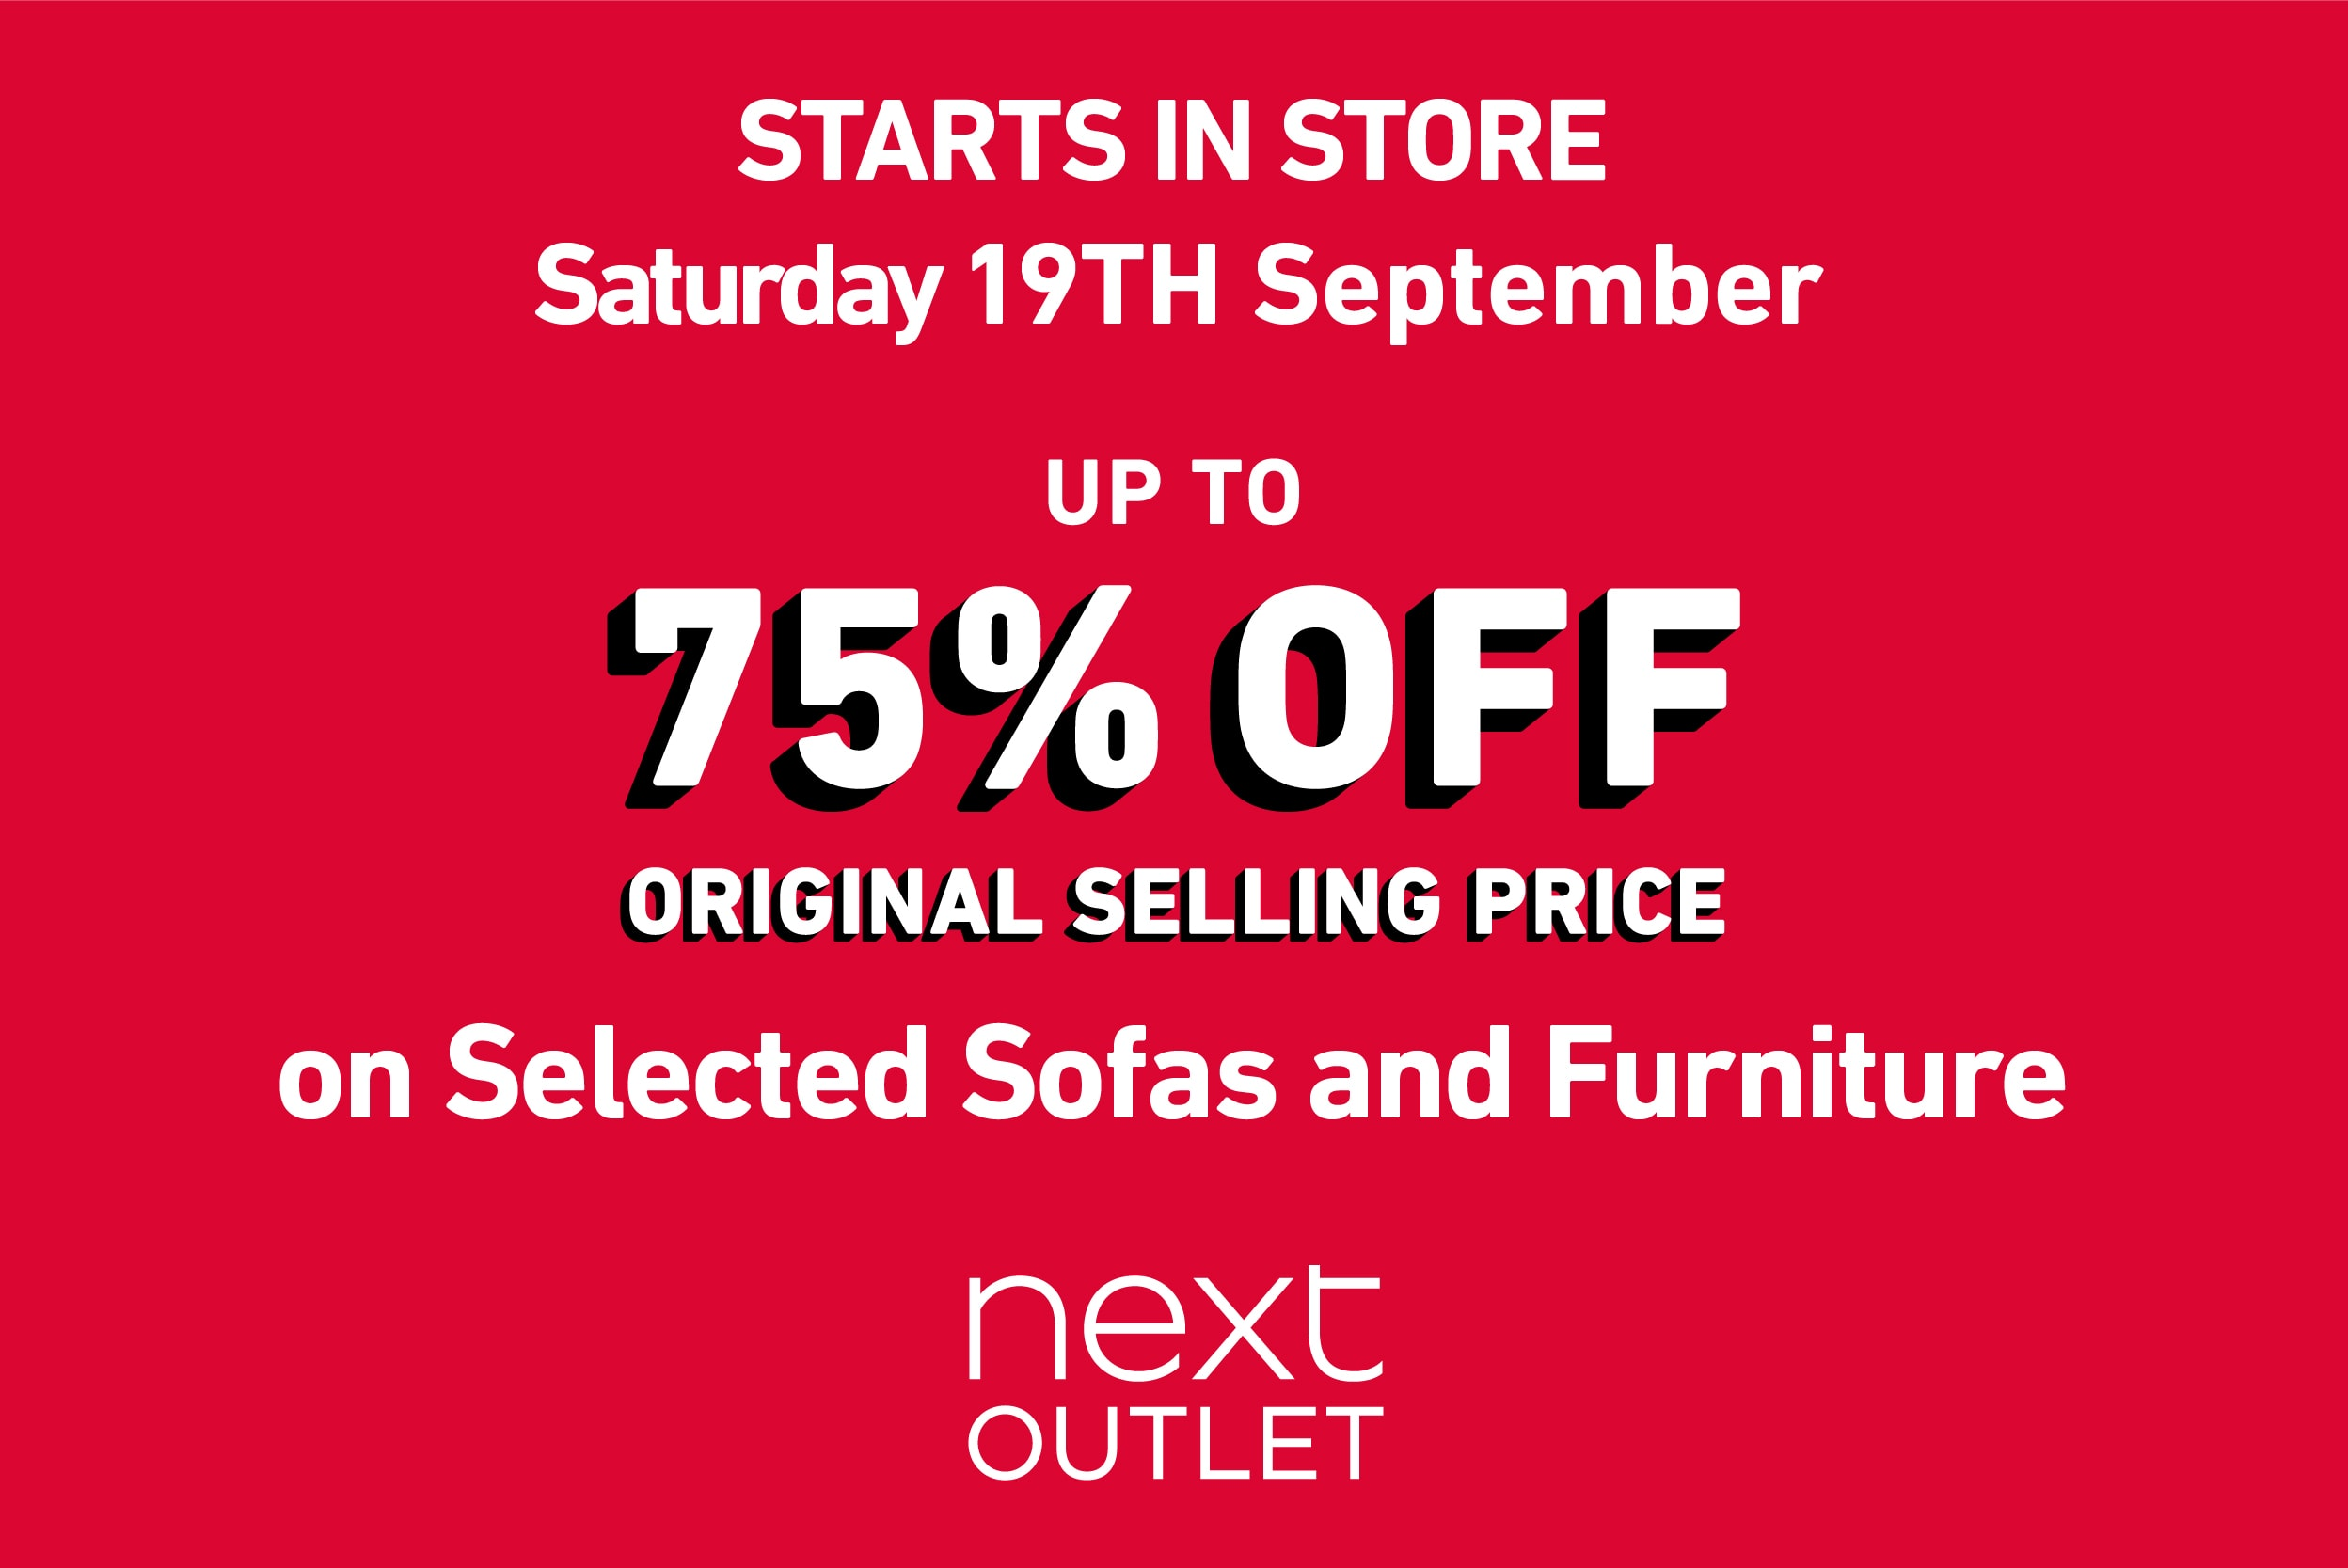 Next Outlet Up to 75% off Sofas and Furniture